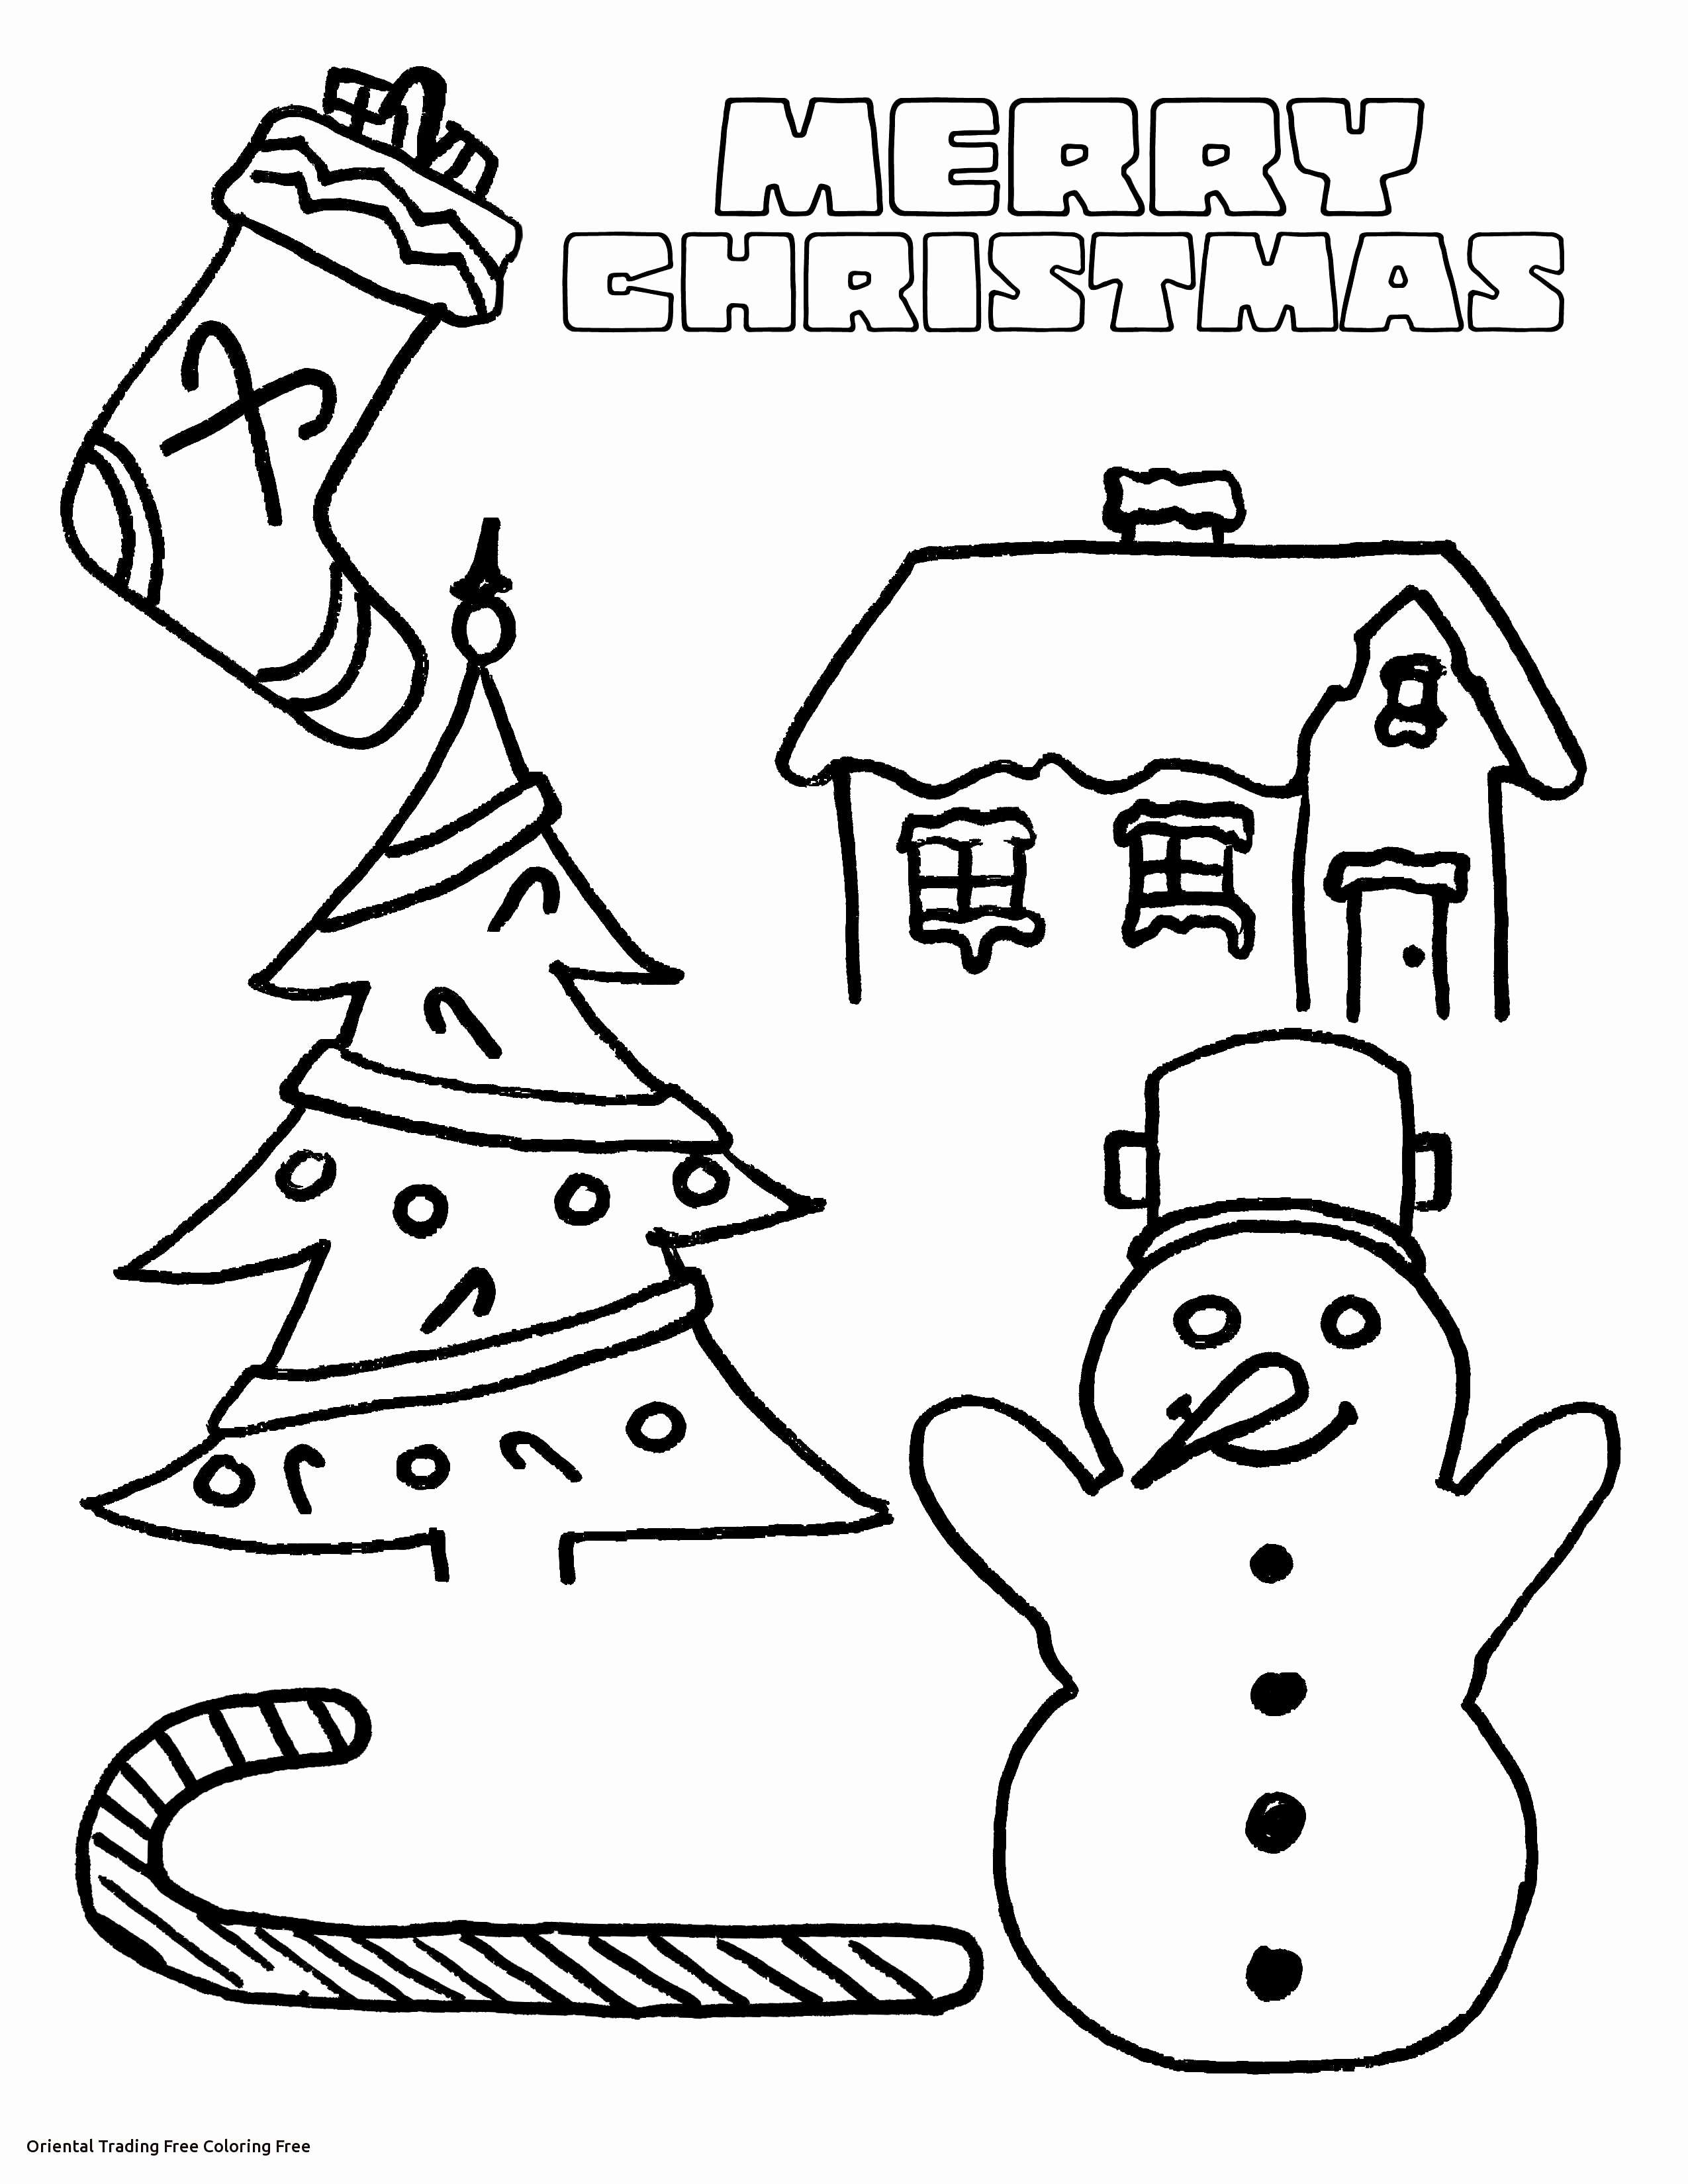 Christmas Coloring Pages Free To Print With Oriental Trading Printable